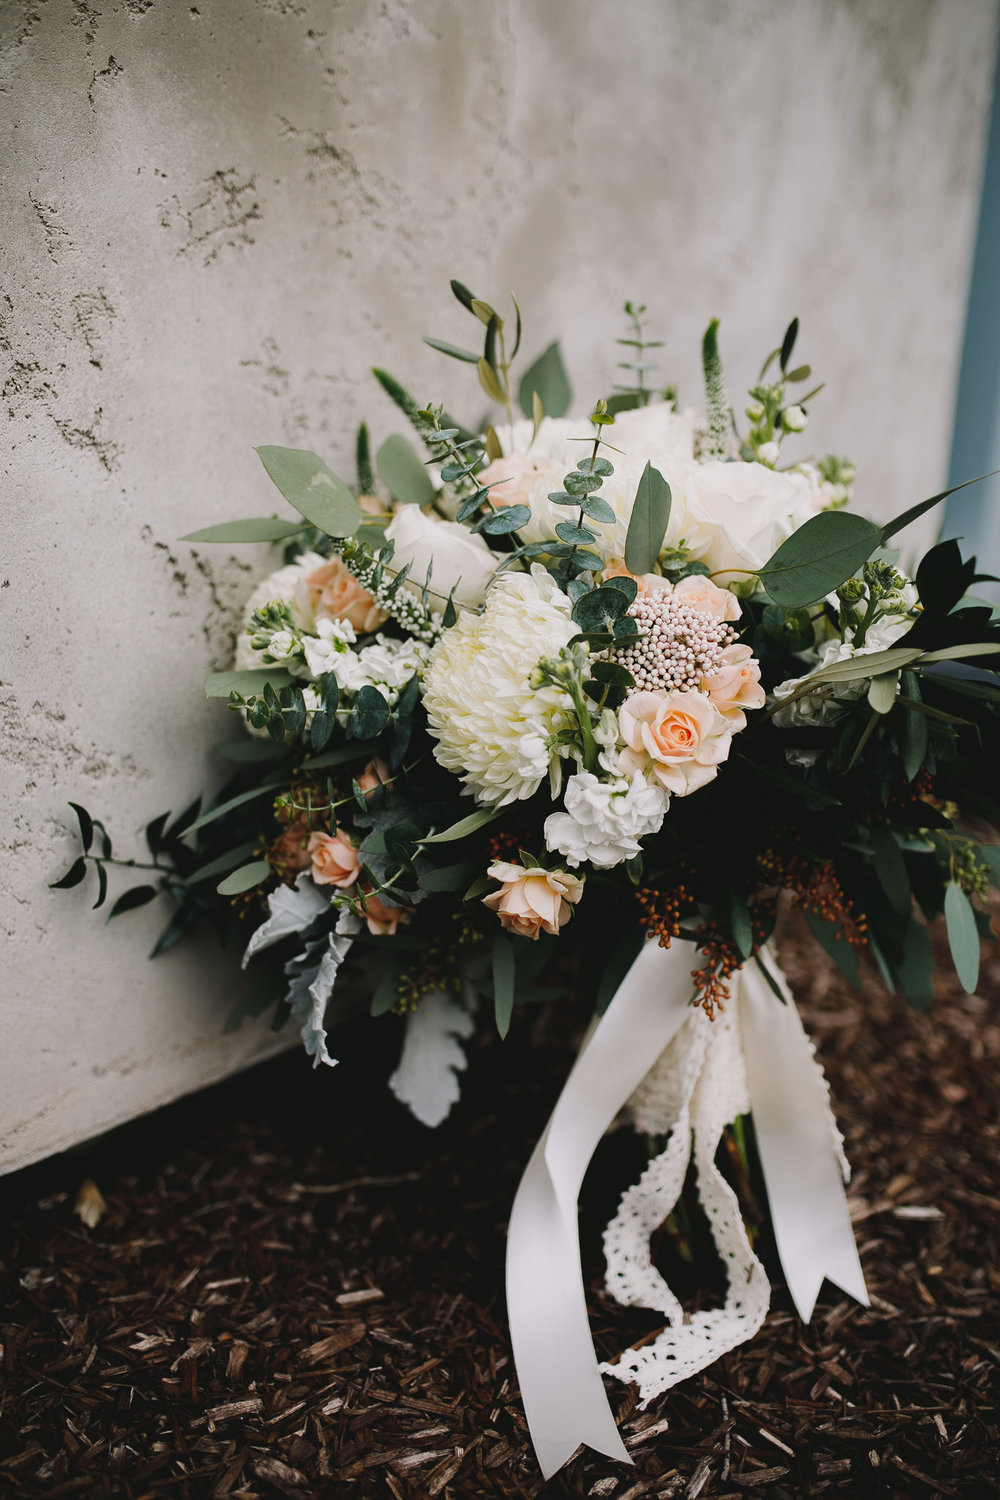 Archer Inspired Photography Shelby and Ben Wedding Sally Tomatoes NorCal Rohnert Park California-6.jpg